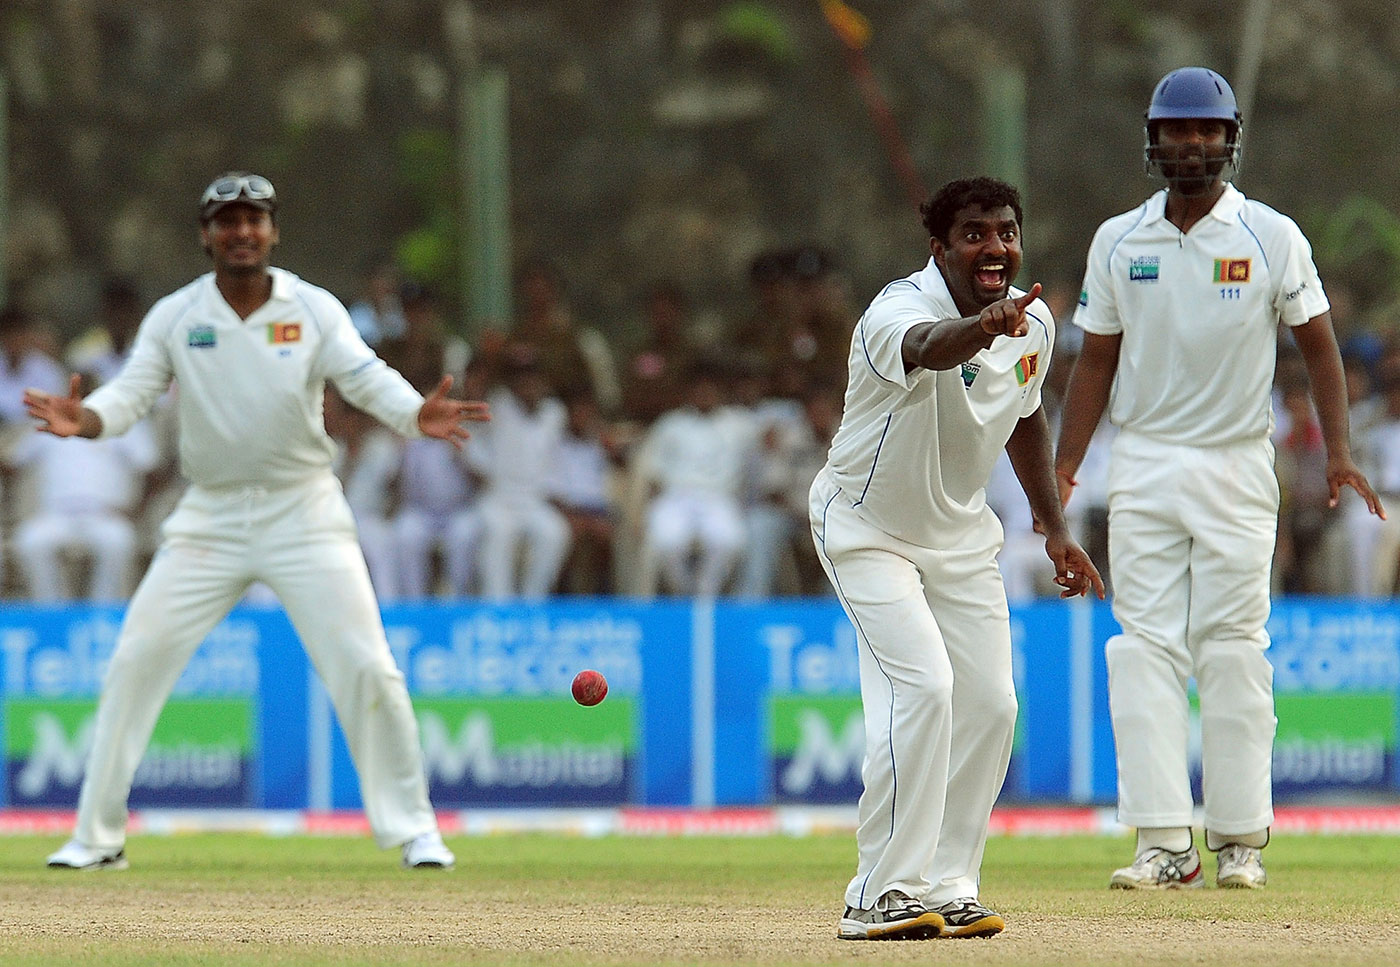 Muttiah Muralitharan successfully appeald for Sachin Tendulkar's wicket